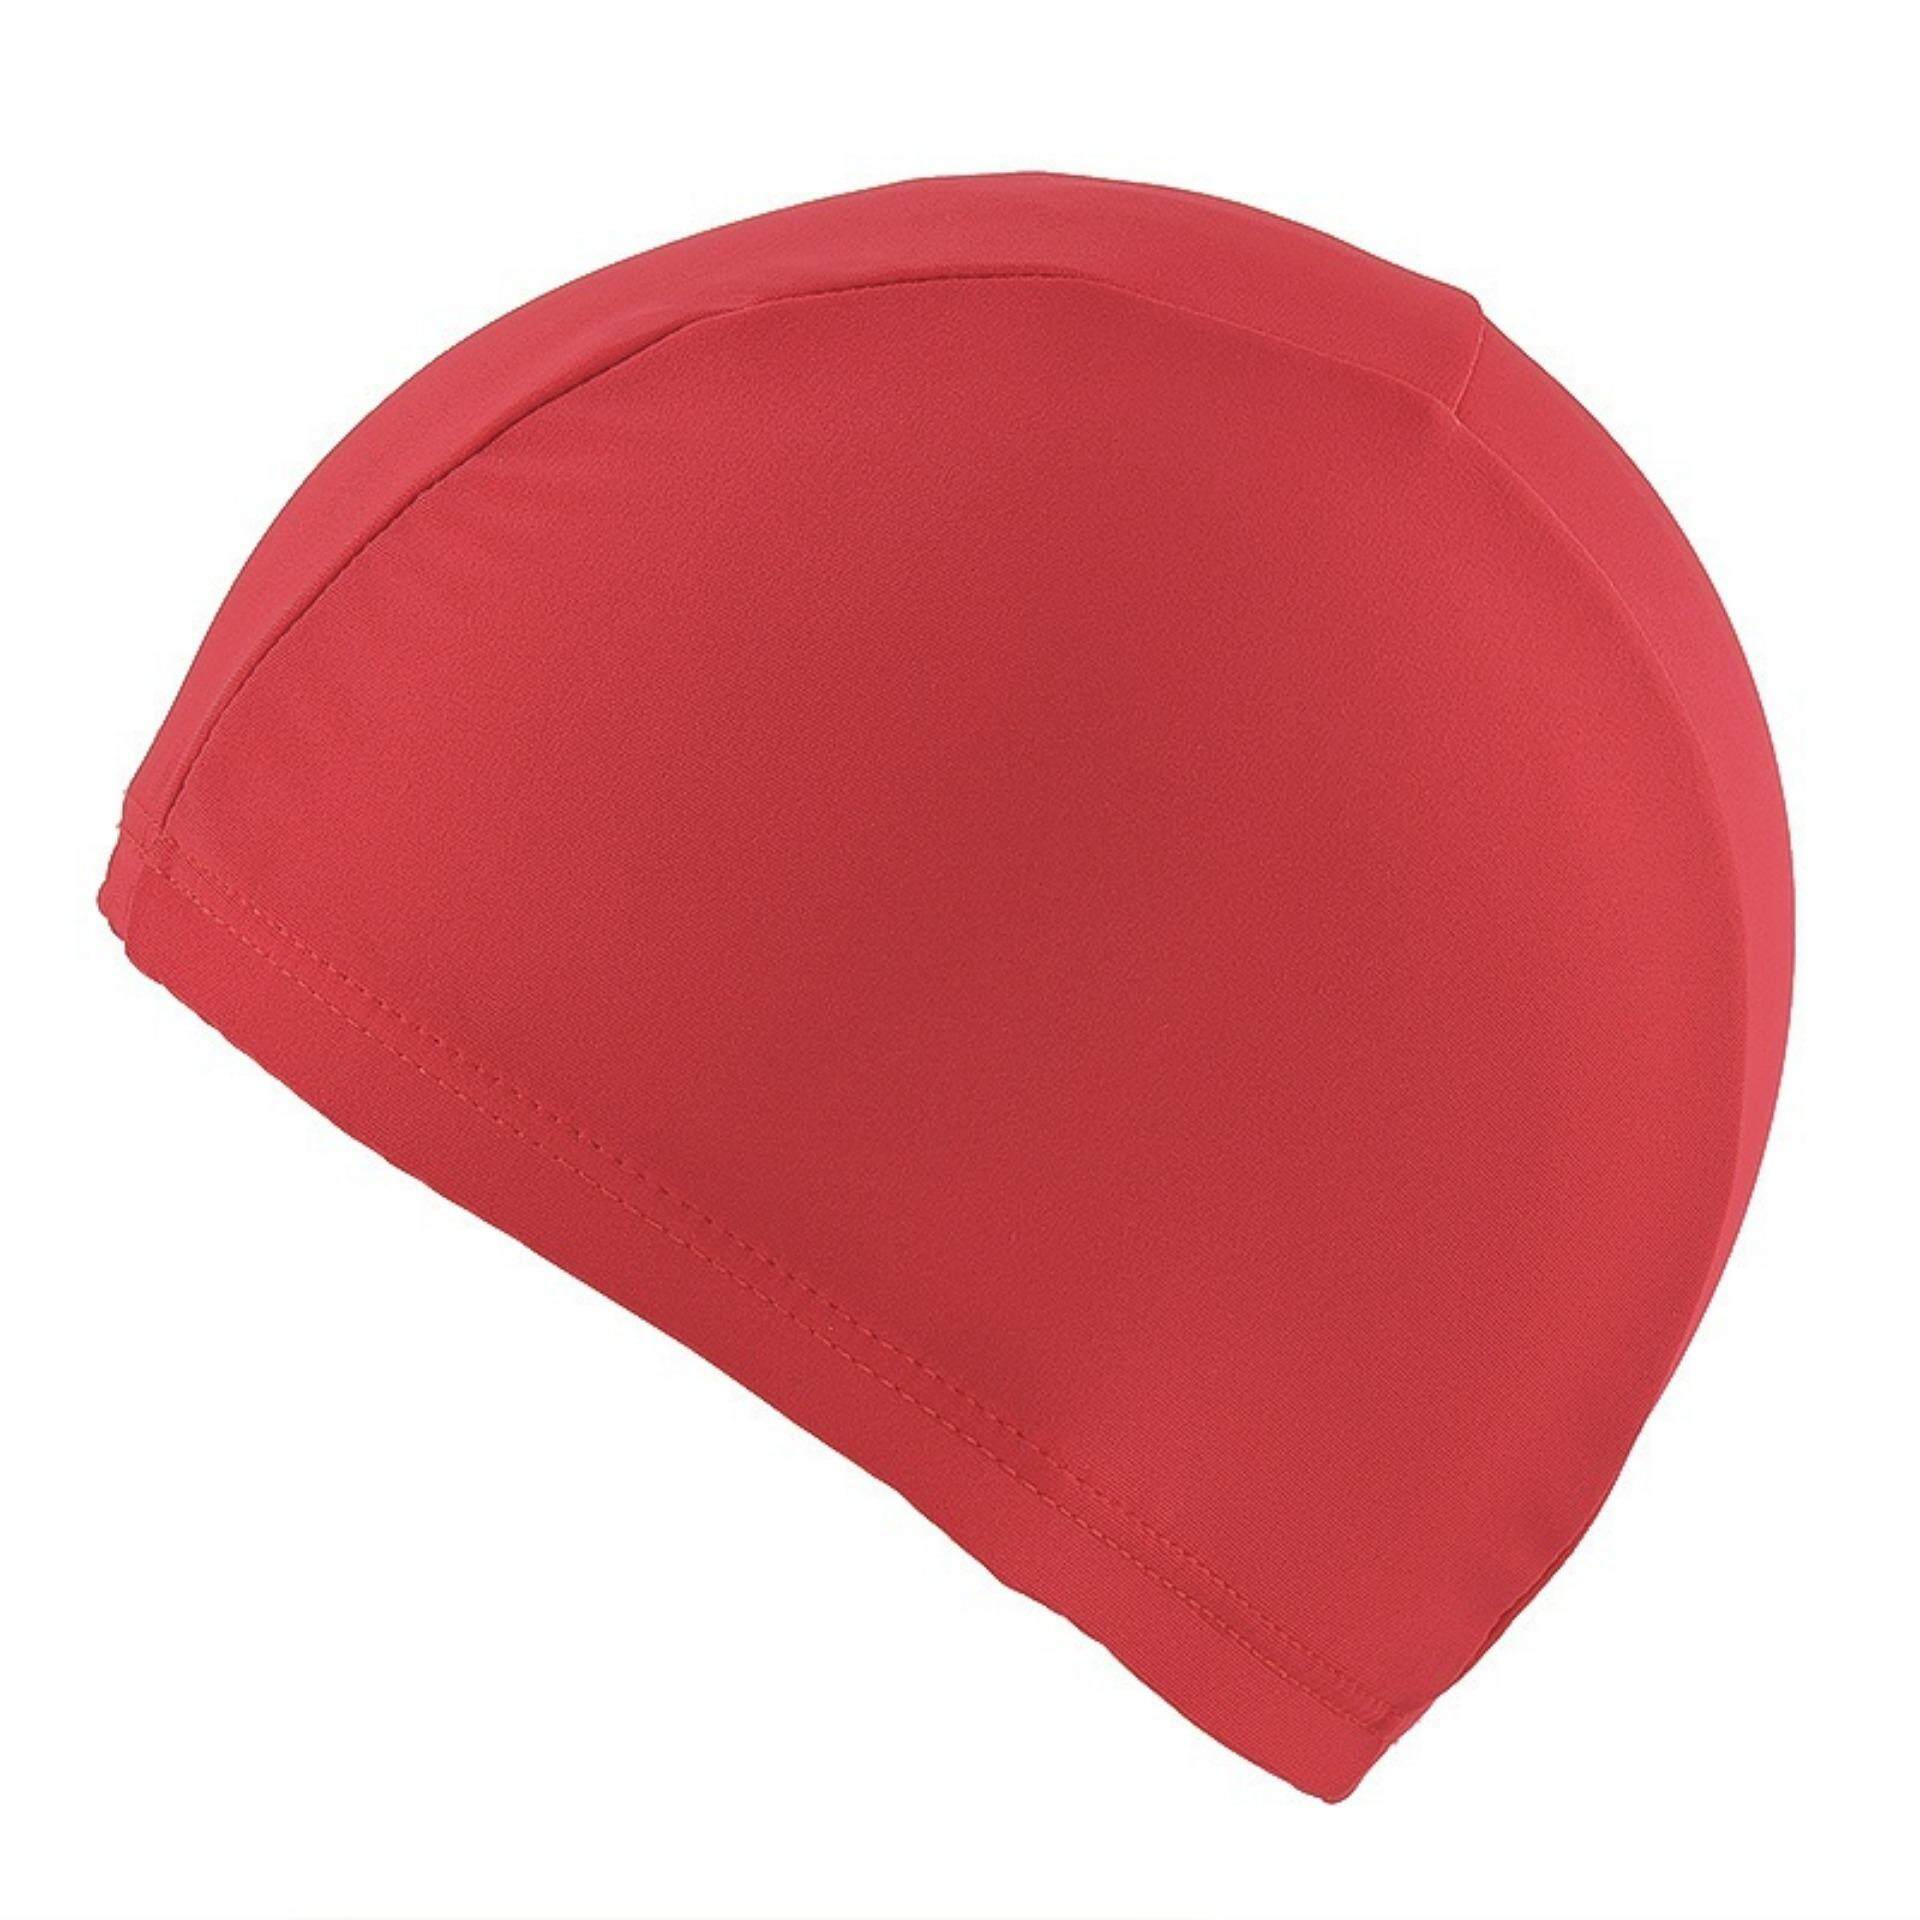 PAlight Unisex Easy Fit Adult Swimming Hat Cap - intl